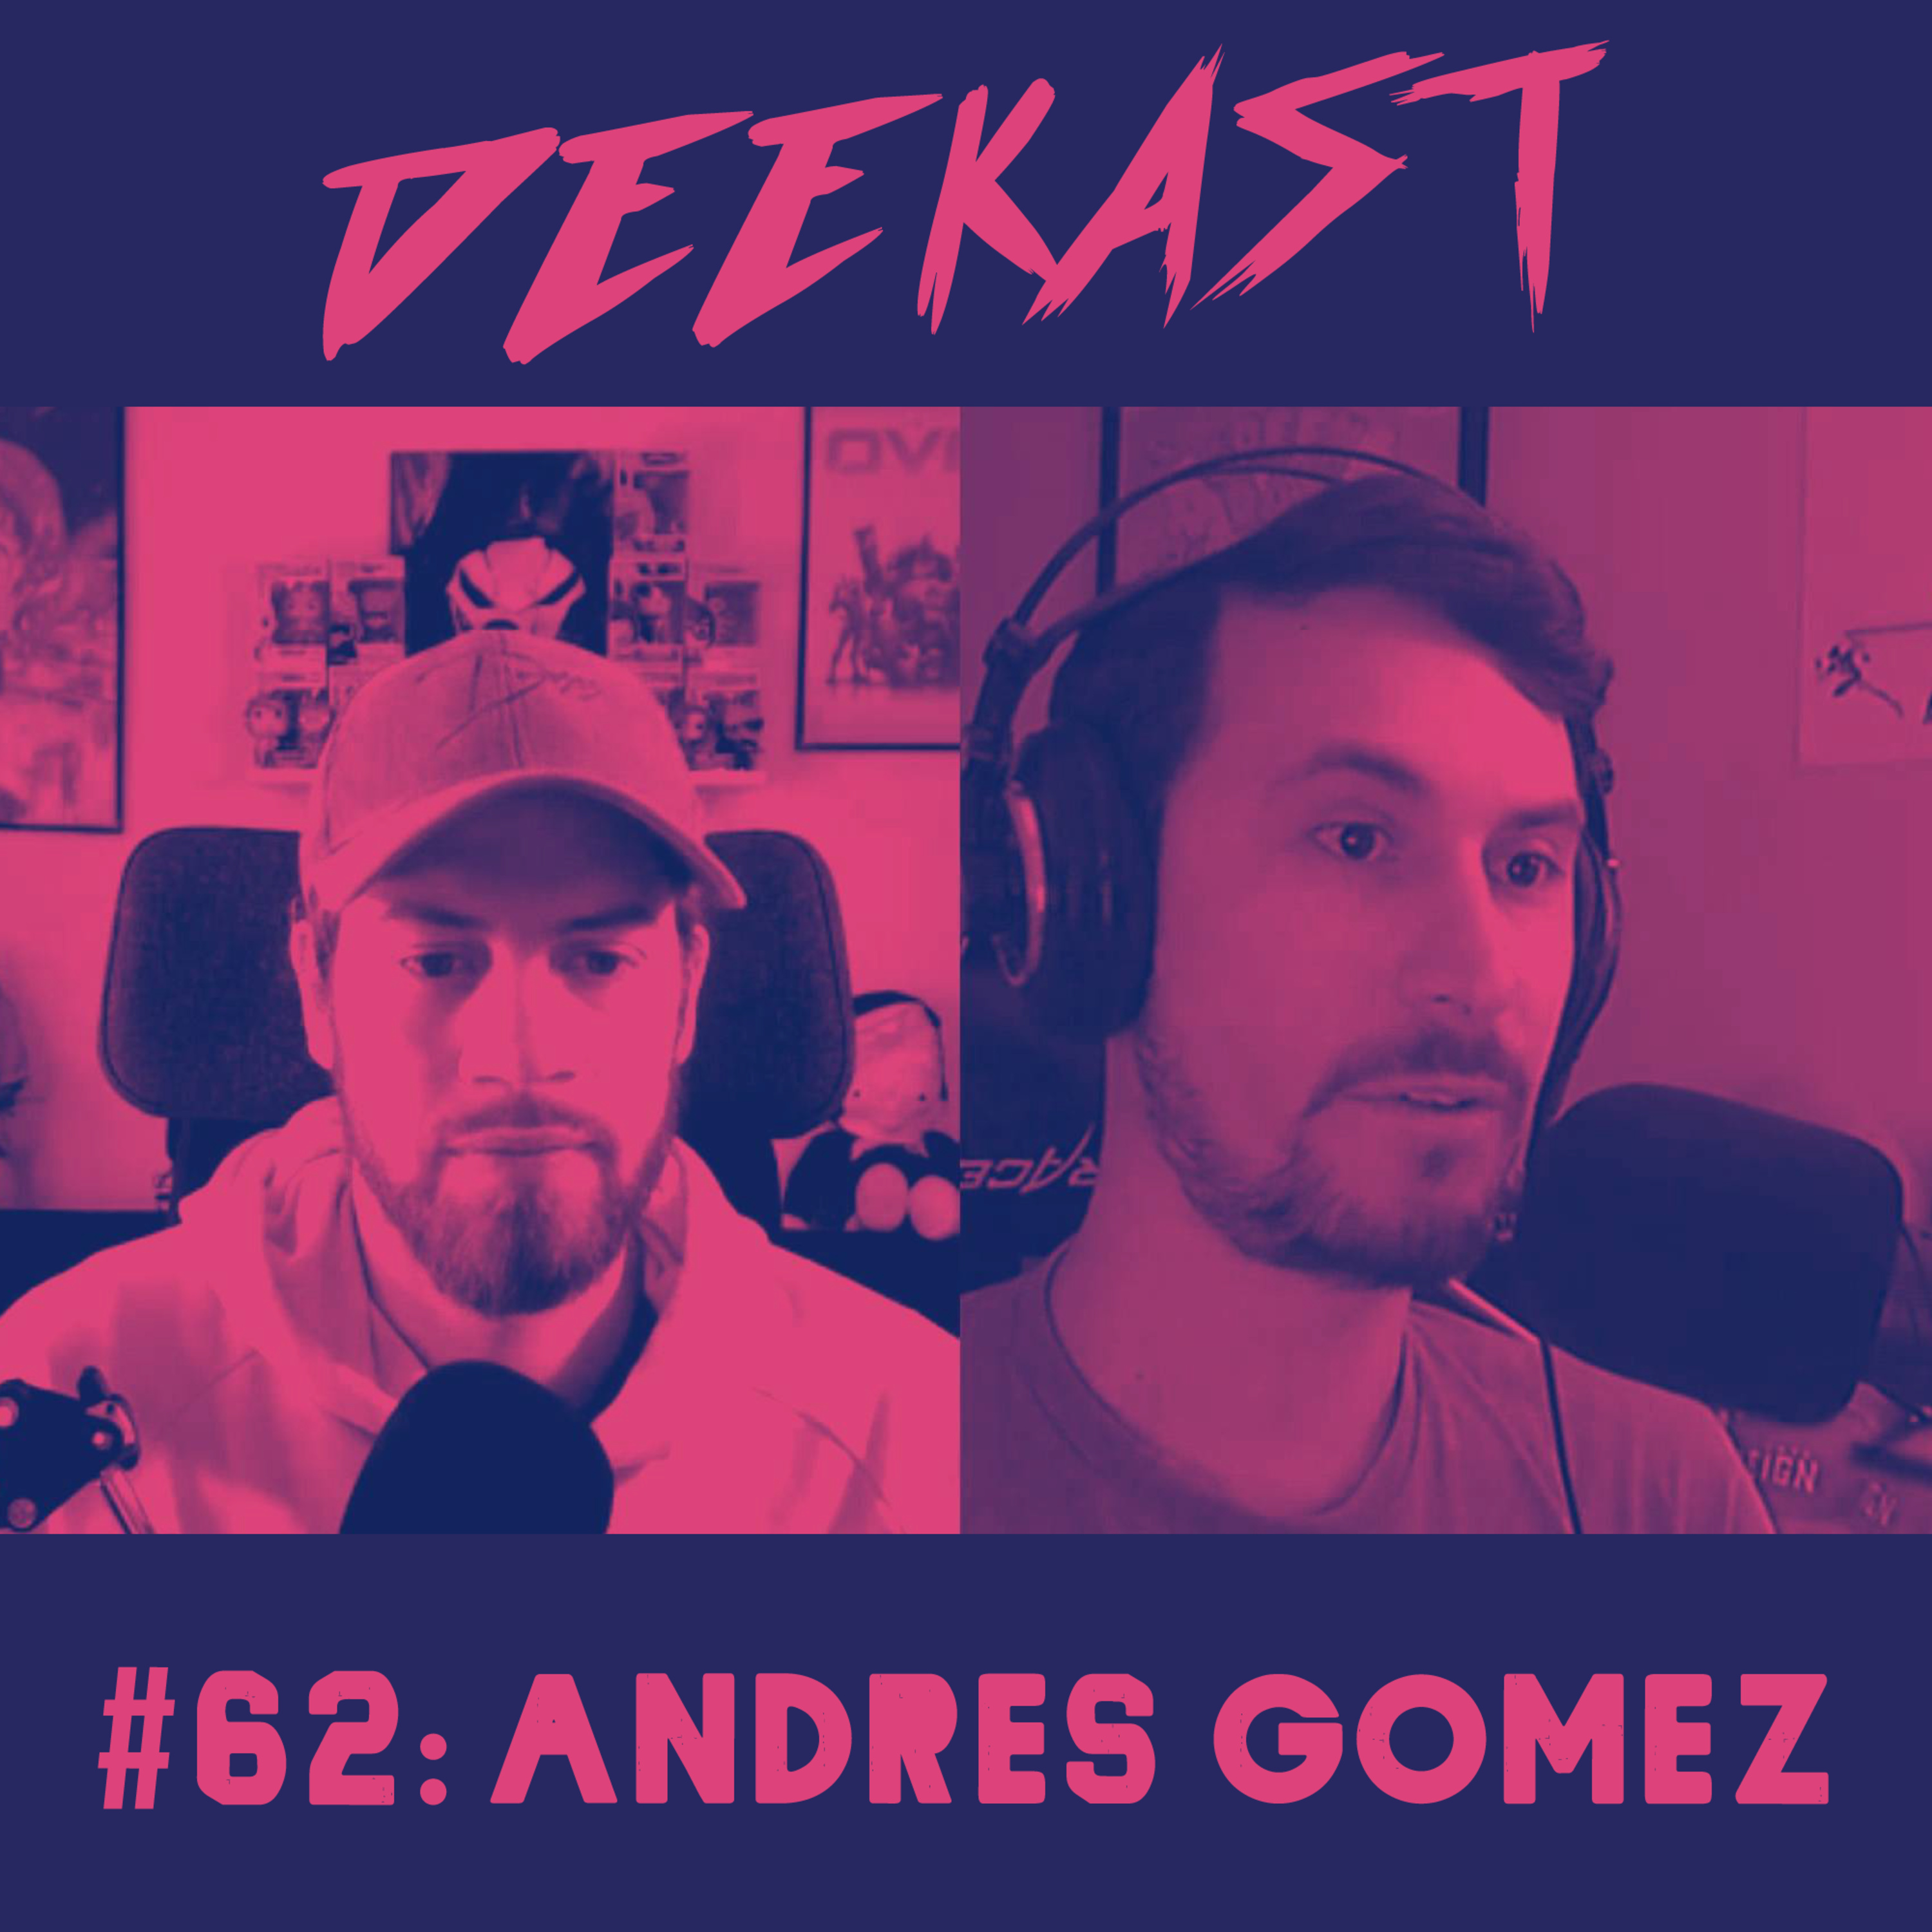 #62. Andres Gomez of the Omnic Lab Podcast